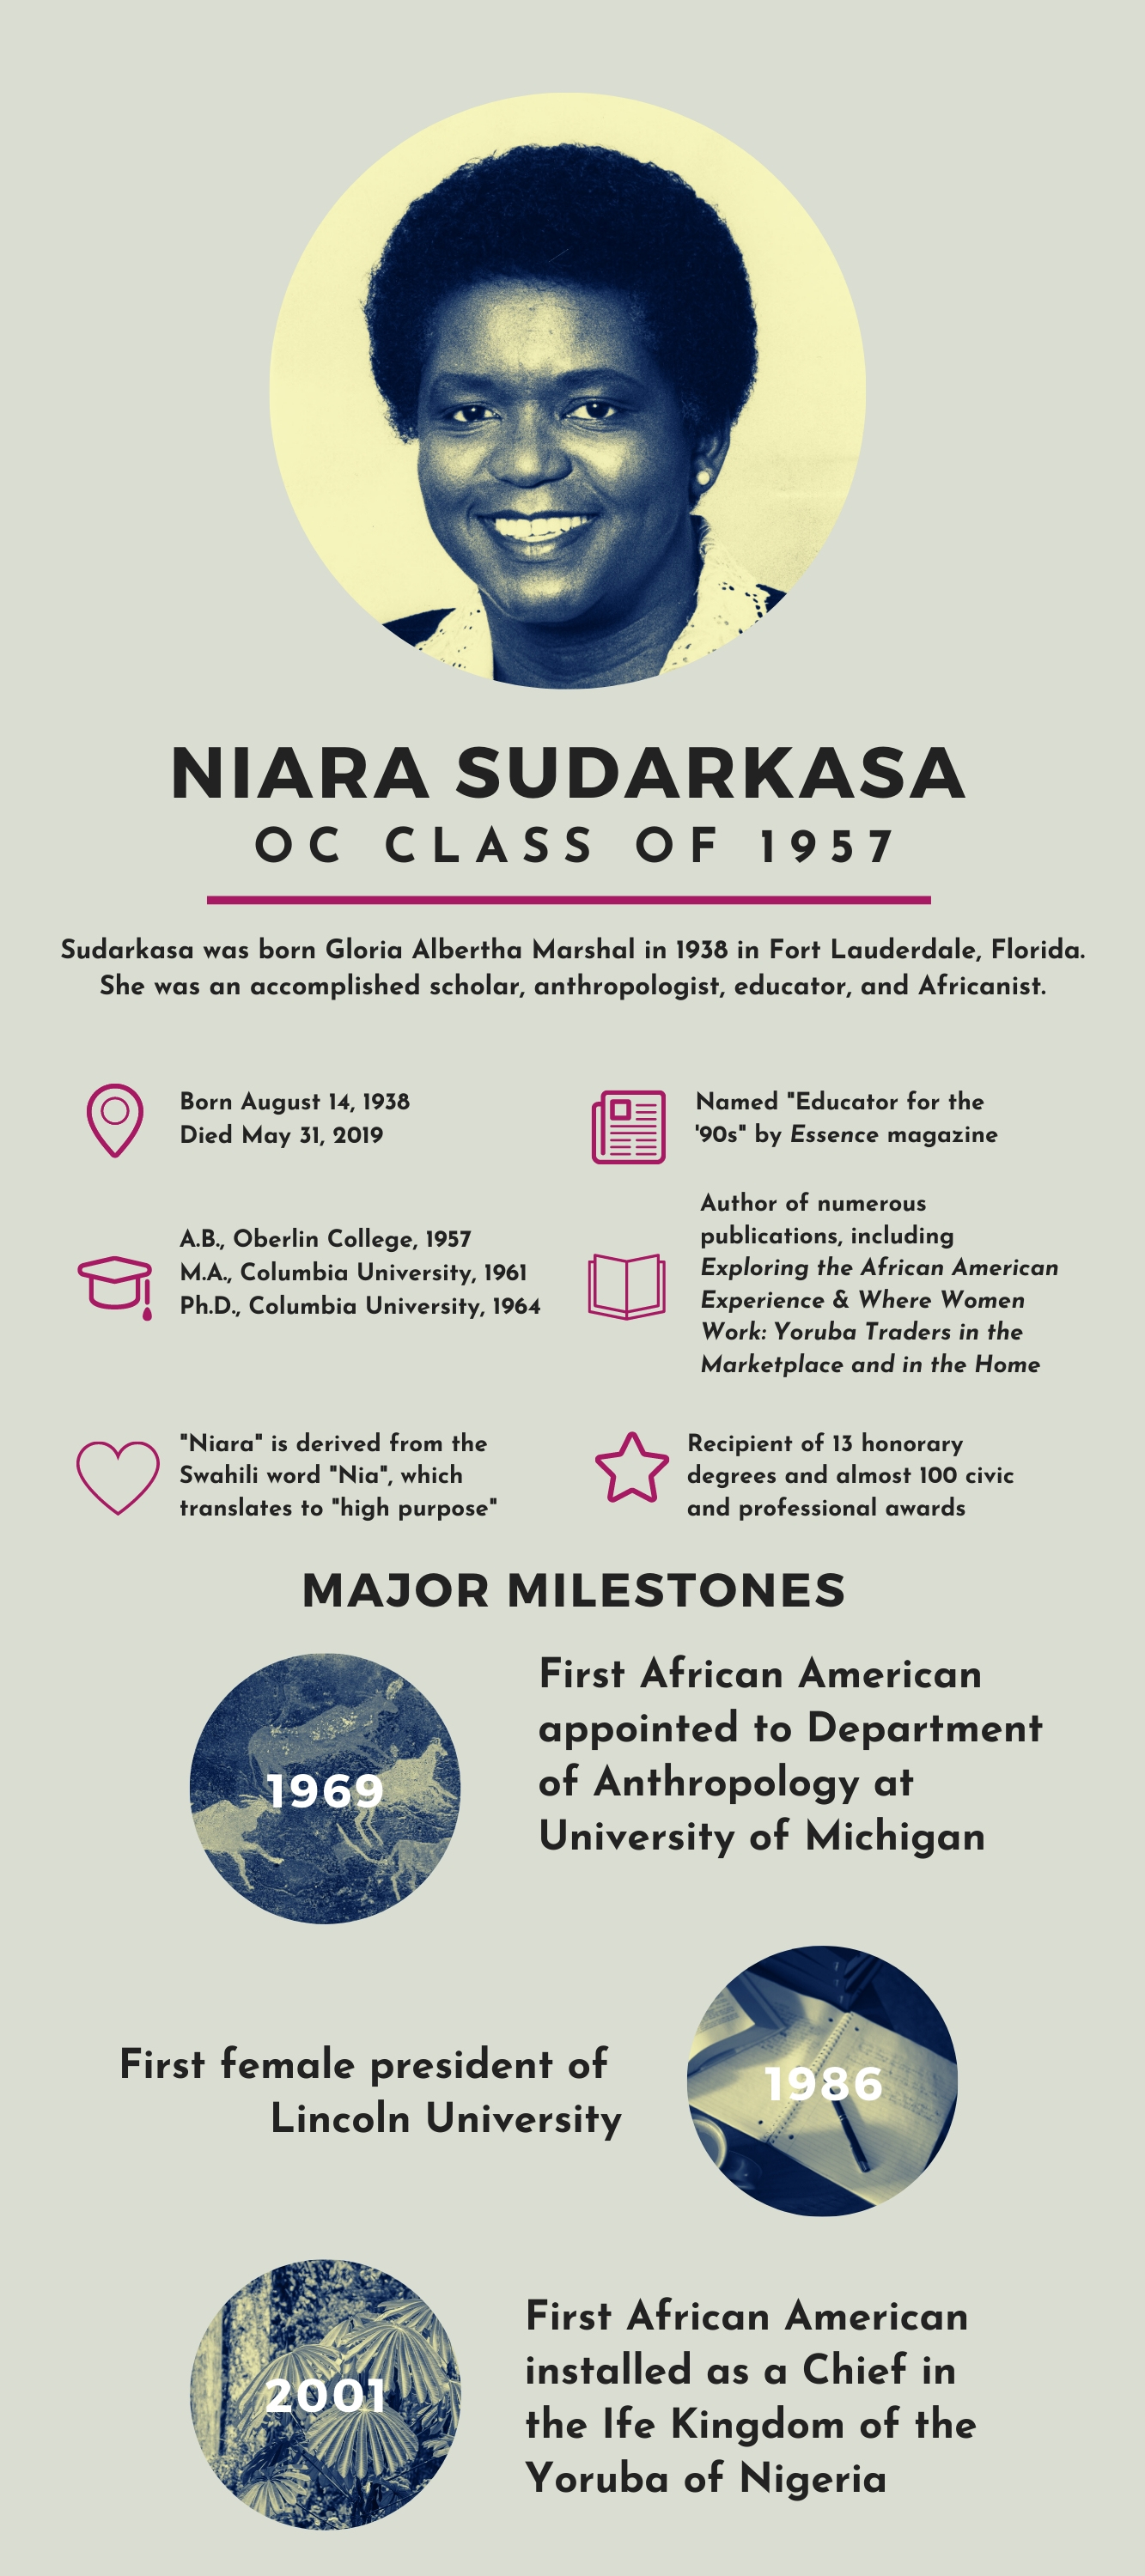 "Above photo:  Infographic depicting the information about Niara Sudarkasa written in this post.  Niara Sudarkasa, OC Class of 1957  Sudarkasa was born Gloria Albertha Marshal in 1938 in Fort Lauderdale, Florida. She was an accomplished scholar, anthropologist, educator, and Africanist.  Born August 14, 1938; Died May 31, 2019  A.B., Oberlin College, 1957; M.A., Columbia University, 1961; Ph.D., Columbia University, 1964  ""Niara"" is derived from the Swahili word ""Nia"", which translates to ""high purpose""  Named ""Educator for the '90s"" by Essence magazine  Author of numerous publications, including Exploring the African American Experience & Where Women Work: Yoruba Traders in the Marketplace and in the Home  Recipient of 13 honorary degrees and almost 100 civic and professional awards  MAJOR MILESTONES  1969-  First African American appointed to Department of Anthropology at University of Michigan  1986- First female president of Lincoln University  2001-  First African American installed as a Chief in the Ife Kingdom of the Yoruba of Nigeria"